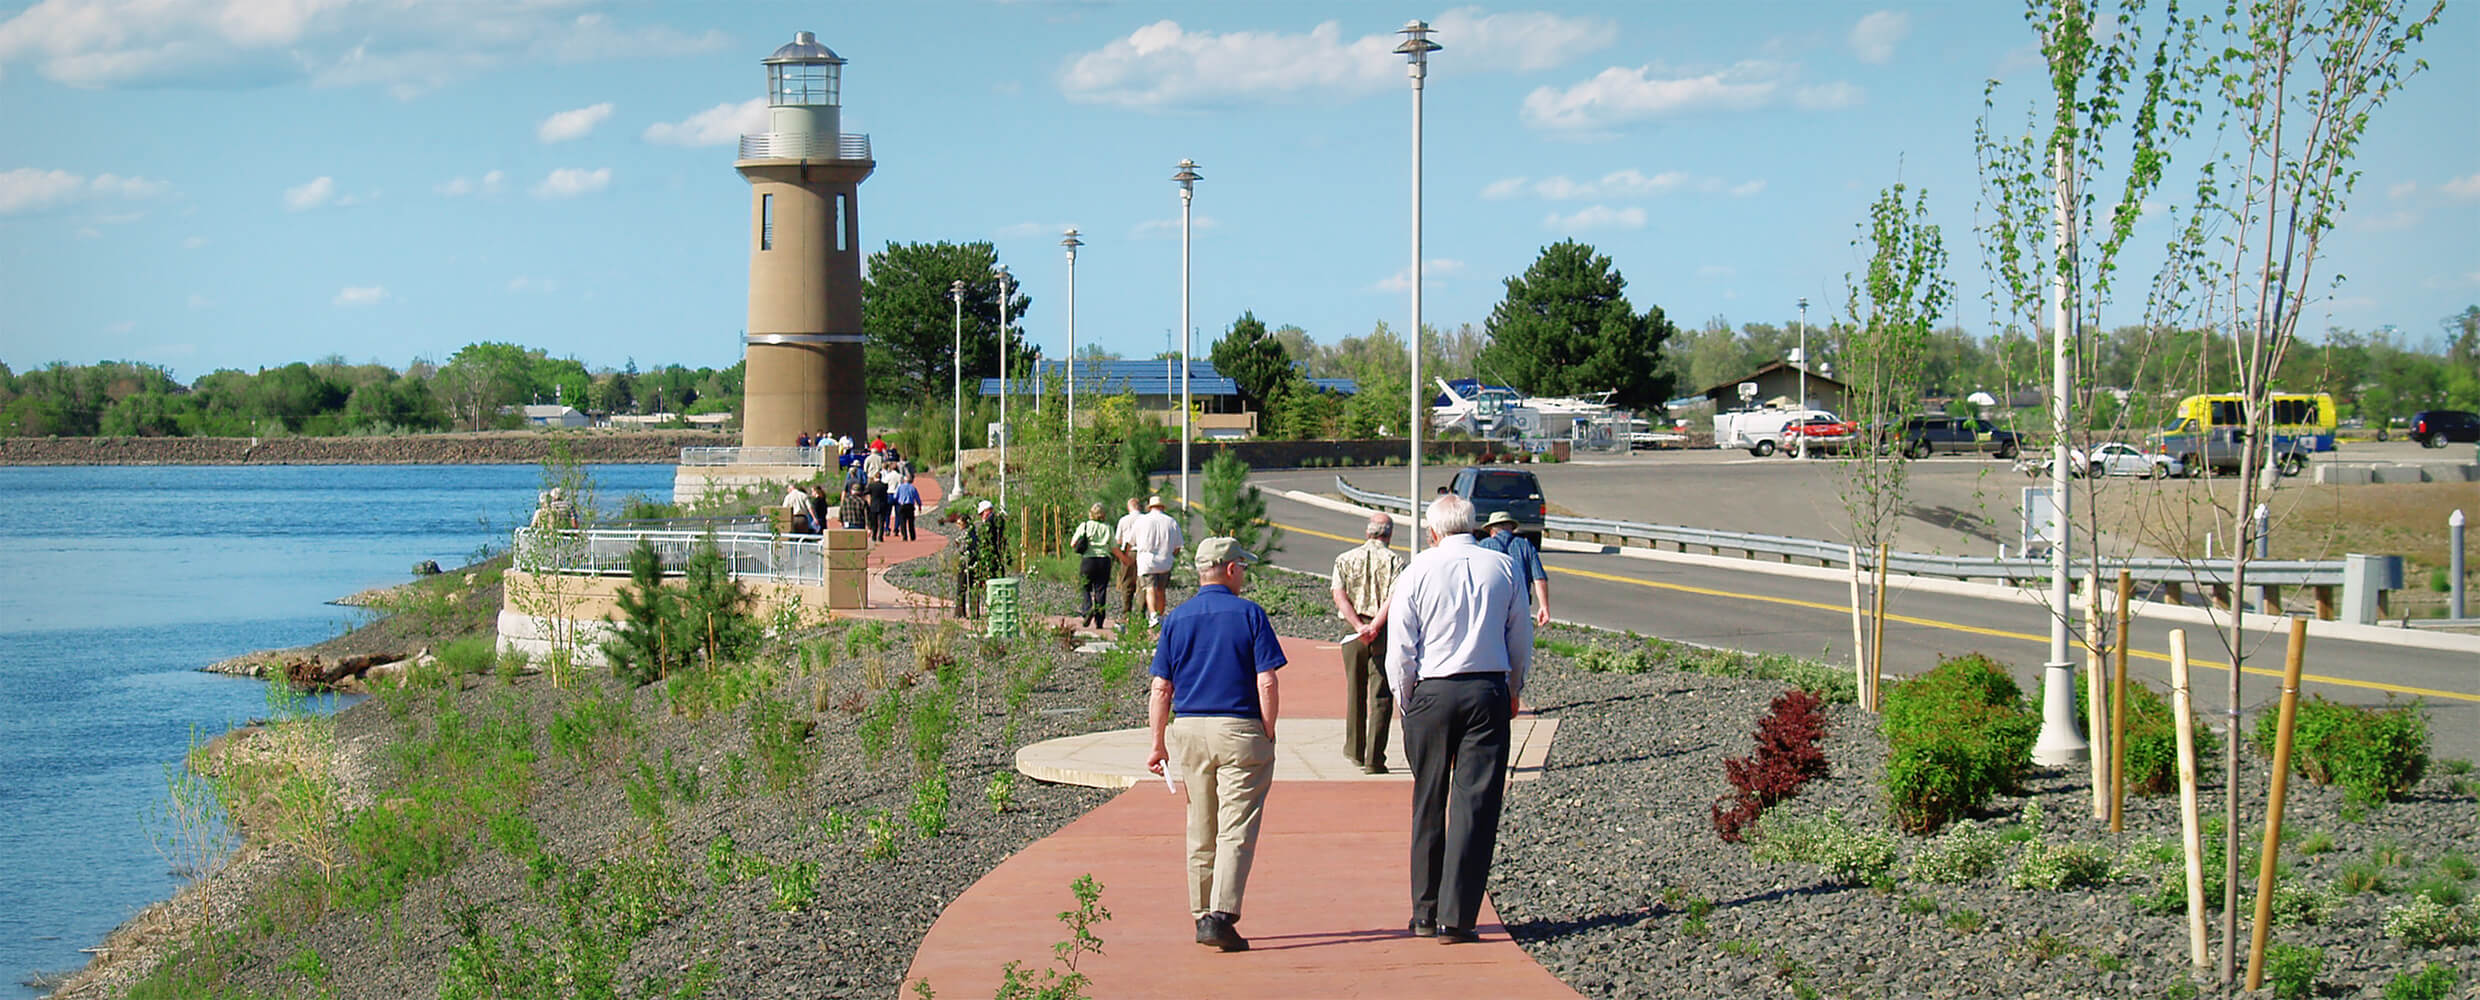 Community members strolling on a Clover Island pathway.